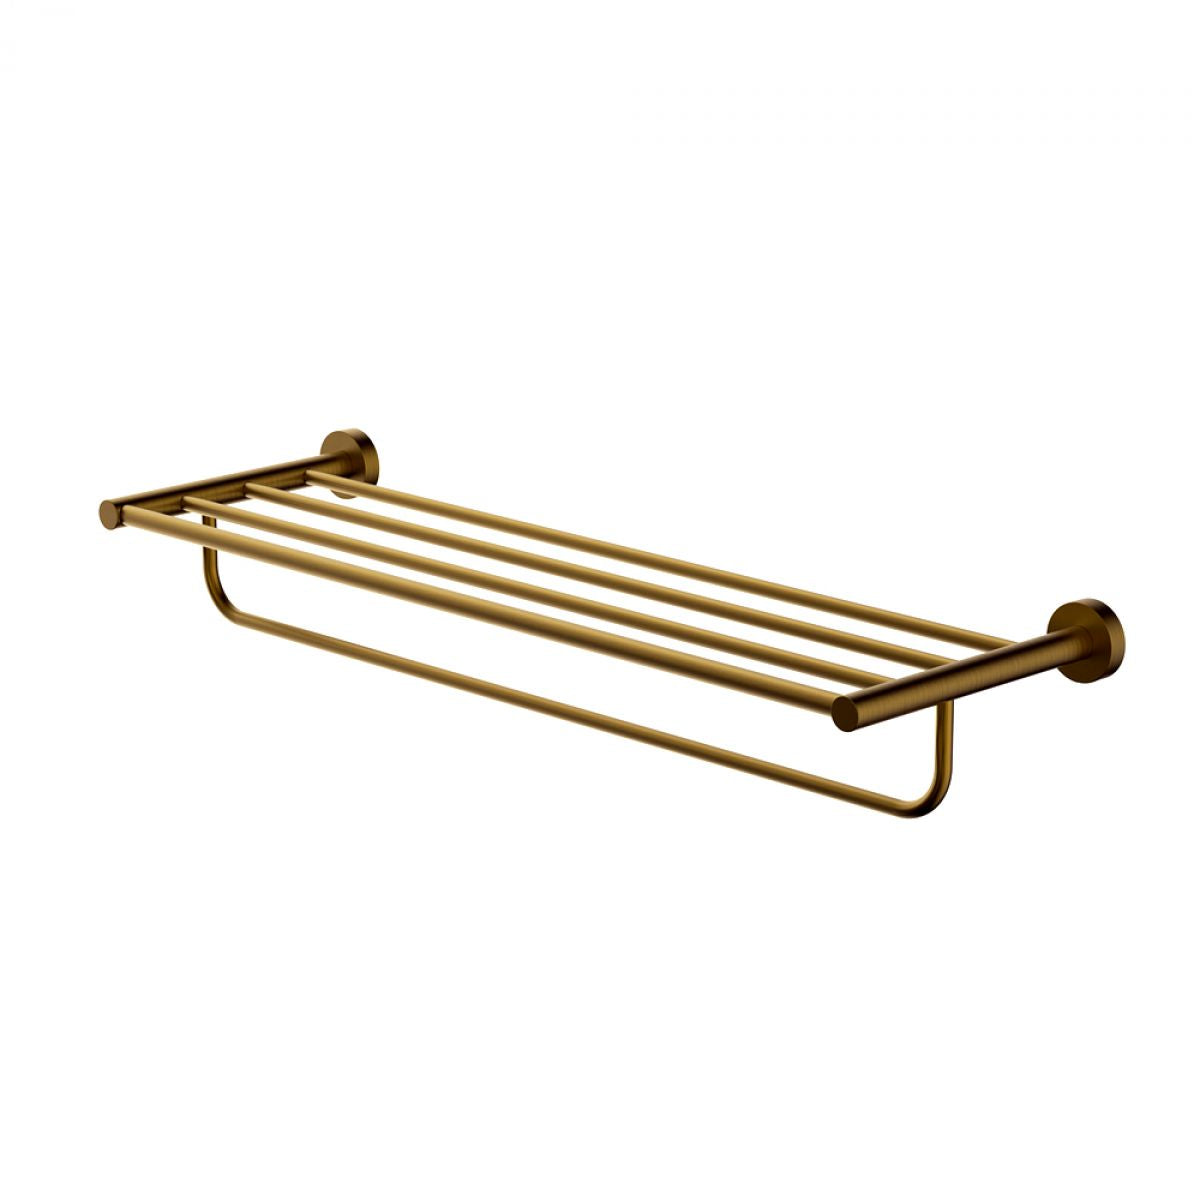 Hoxton Towel Rack - blueskybathrooms